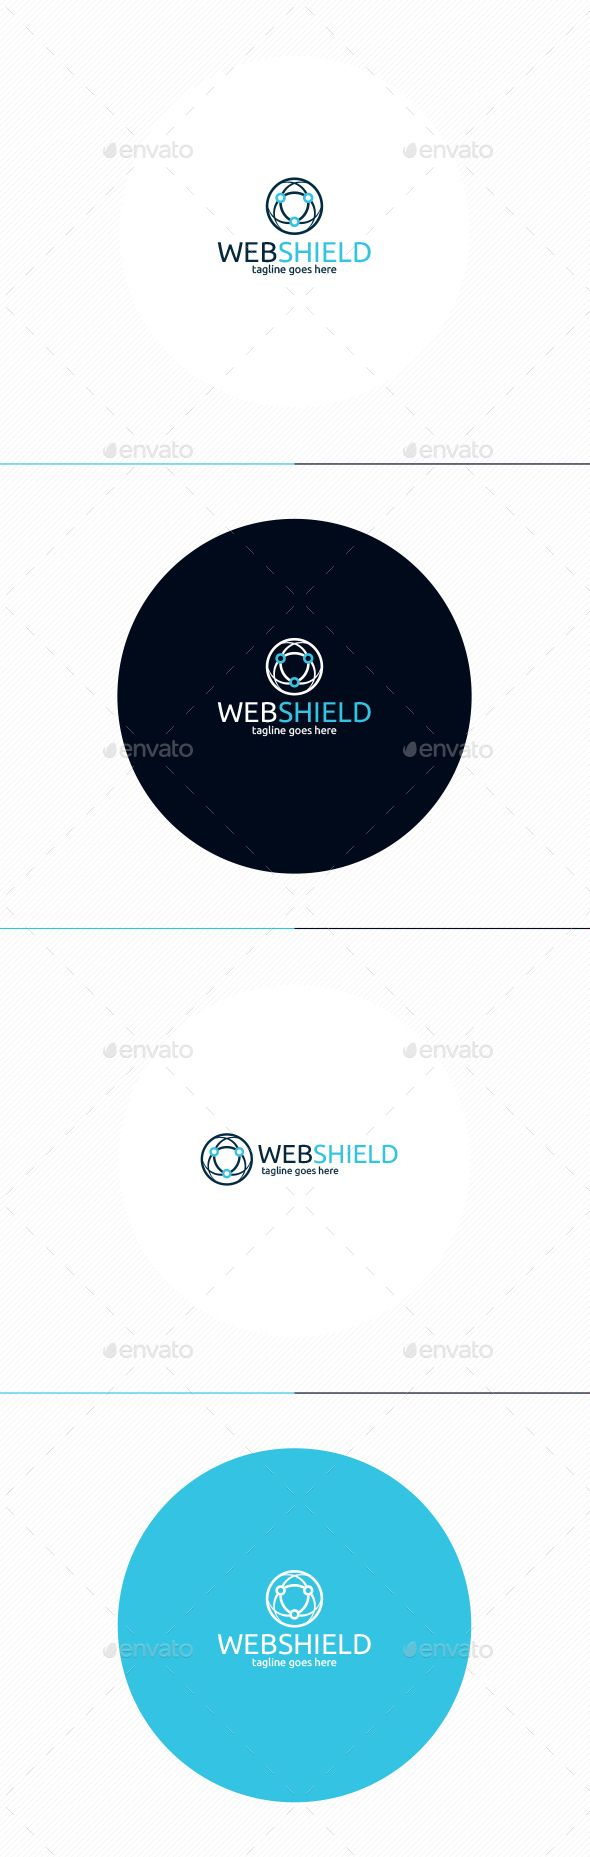 Web Shield Logo by shaoleen �20Fully Editable Logo �20CMYK �20AI, EPS, PSD, PNG files �20Easy to Change Color and Text